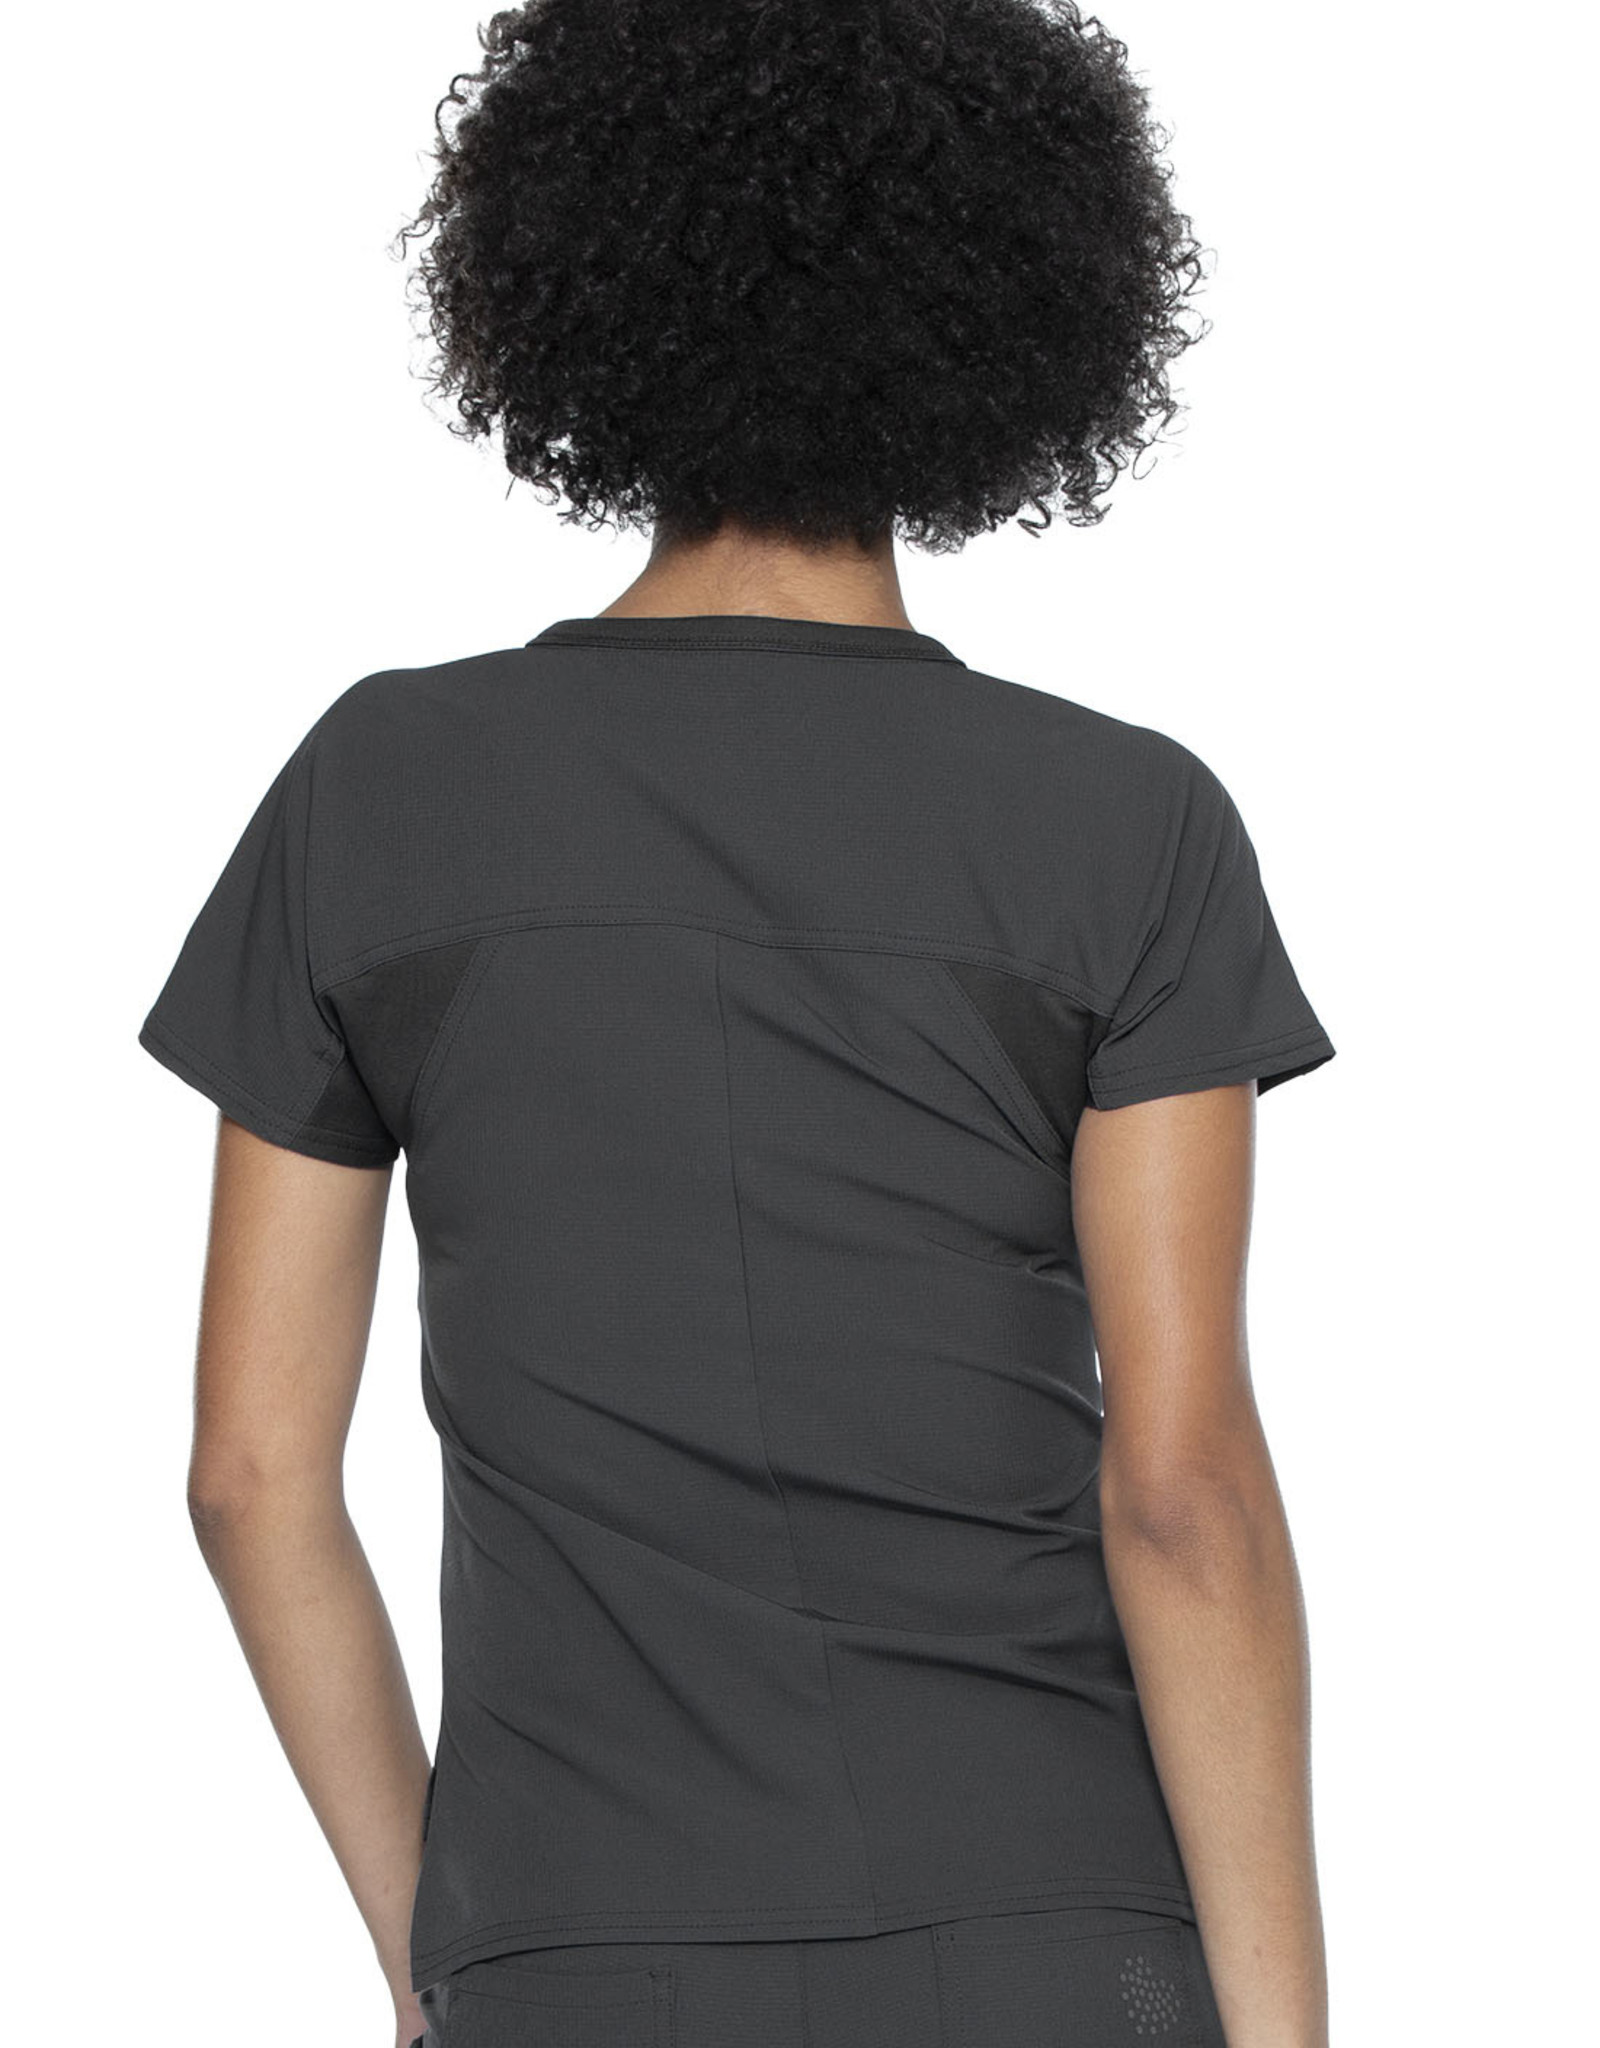 HeartSoul Hs689 Round Neck Tuck In Top Pewter